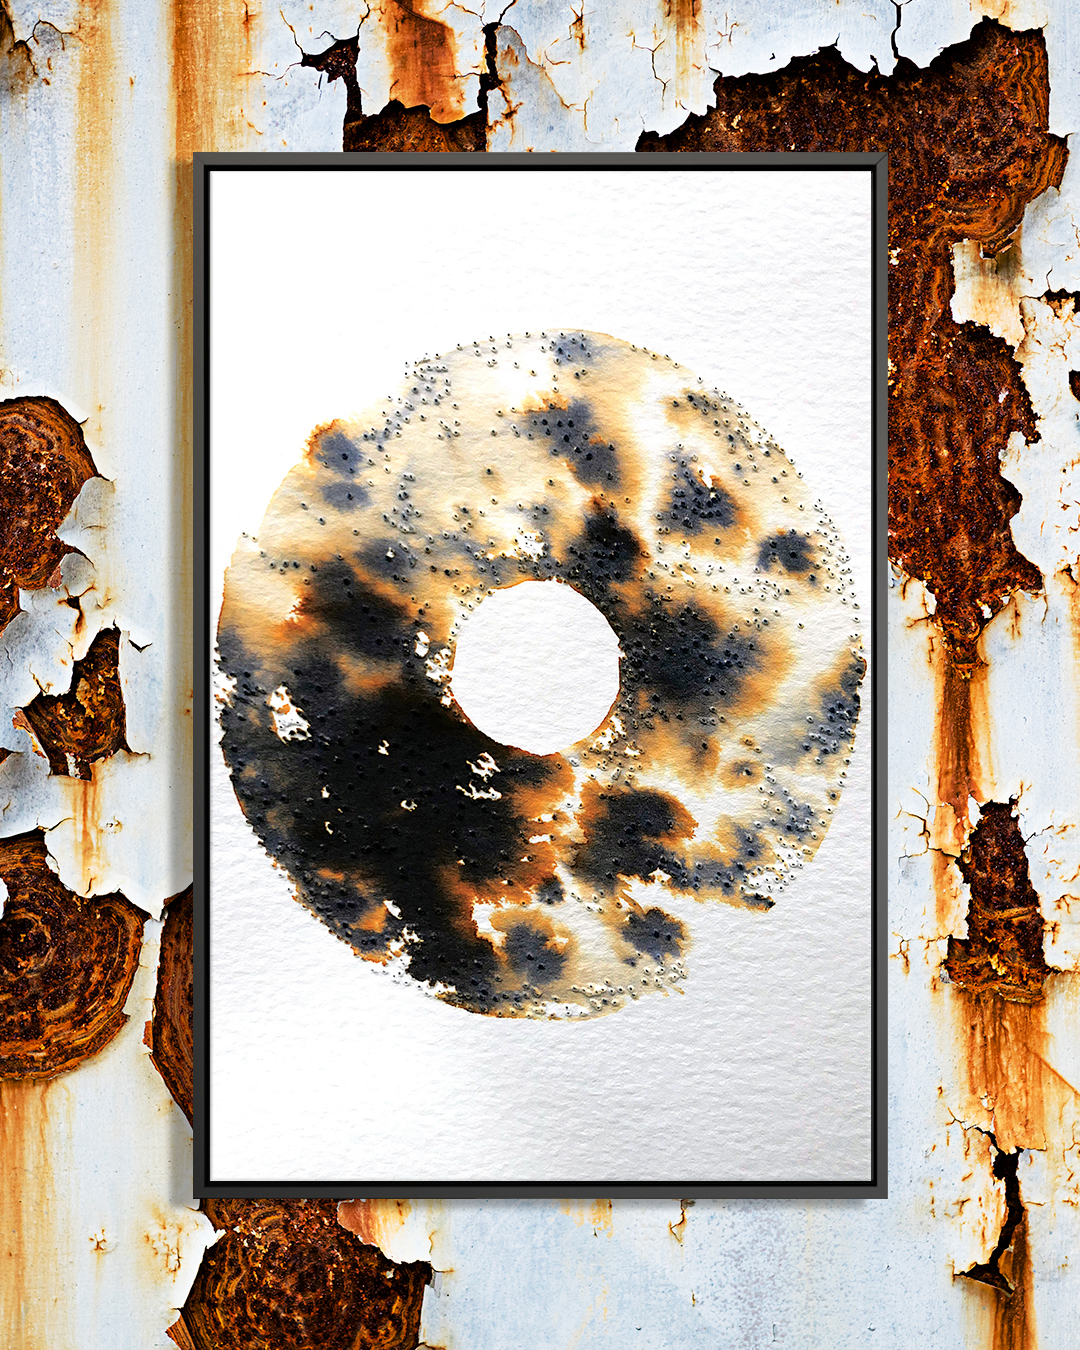 An abstract, disc-like shape with a rusted or burnt texture in black and brown on a white background